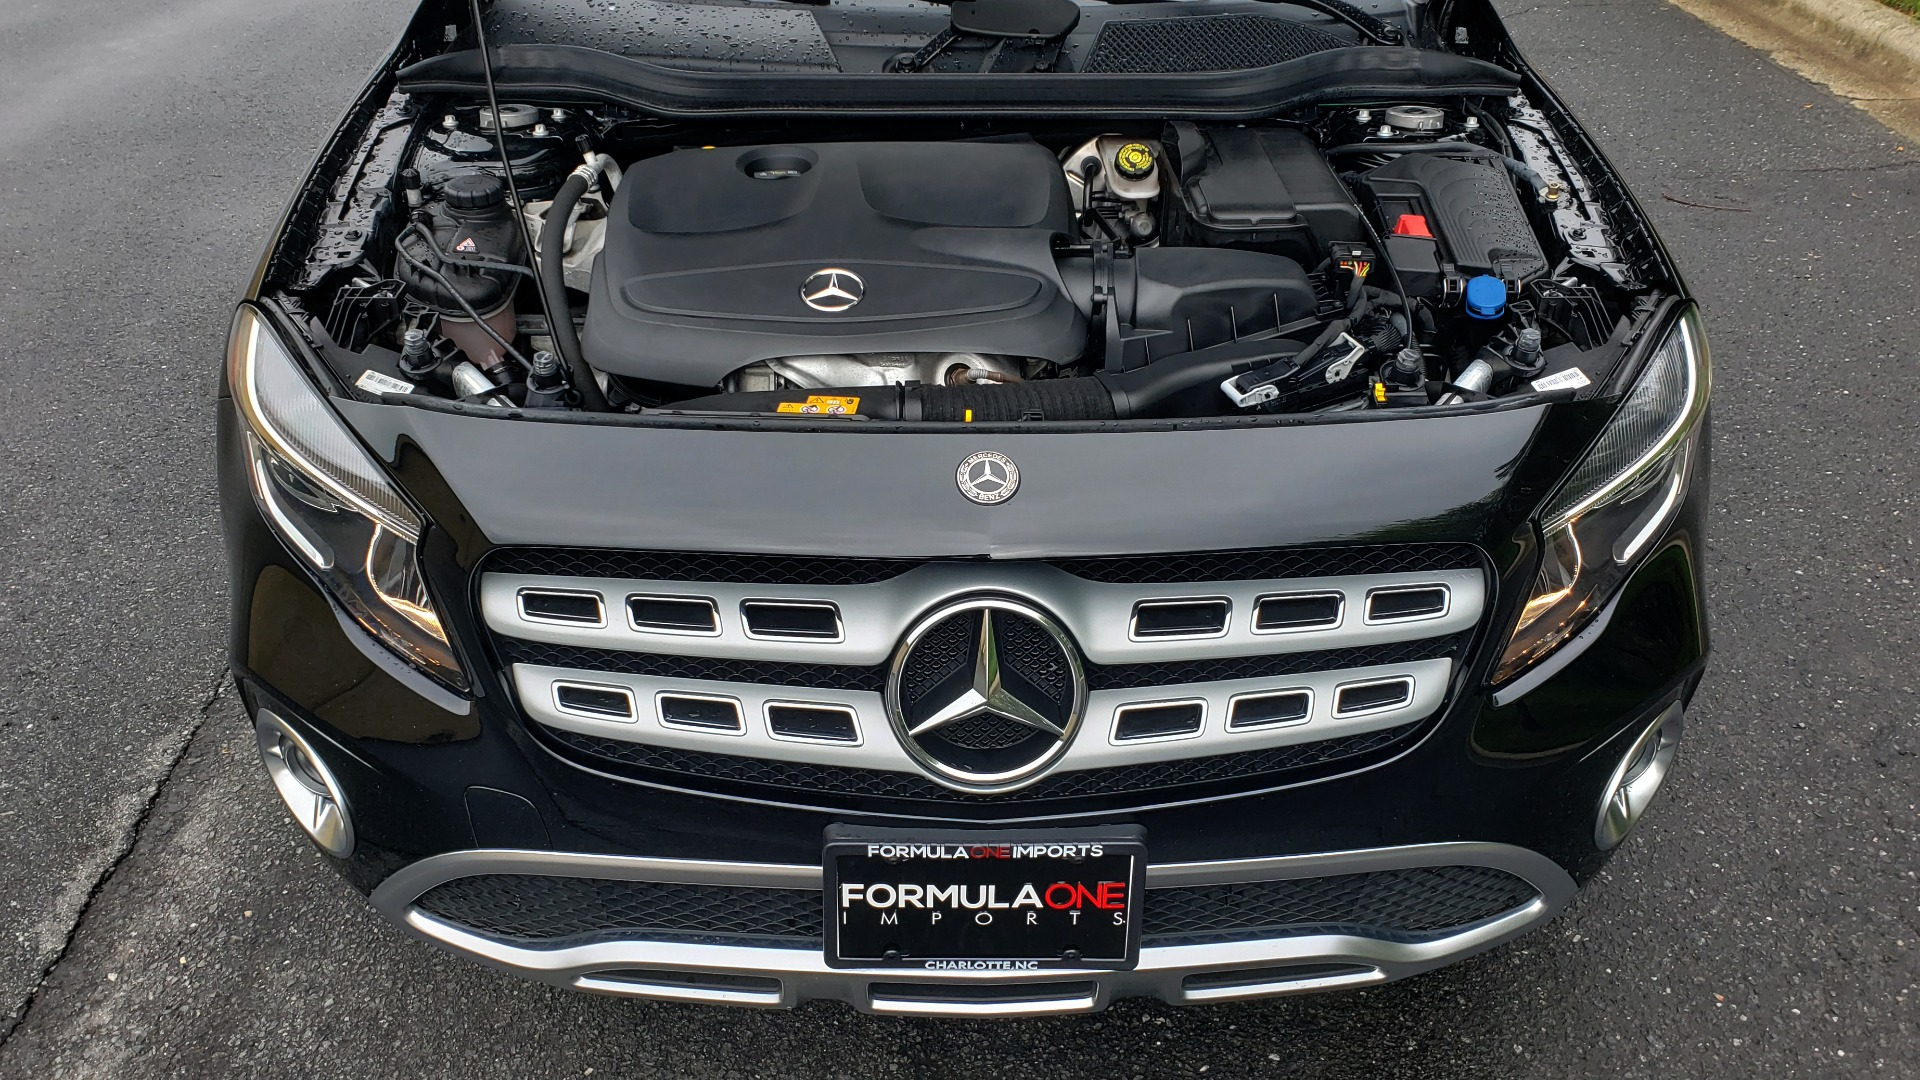 Used 2018 Mercedes-Benz GLA 250 4MATIC / PREMIUM / CONV PKG / NAV / PANO-ROOF for sale Sold at Formula Imports in Charlotte NC 28227 10